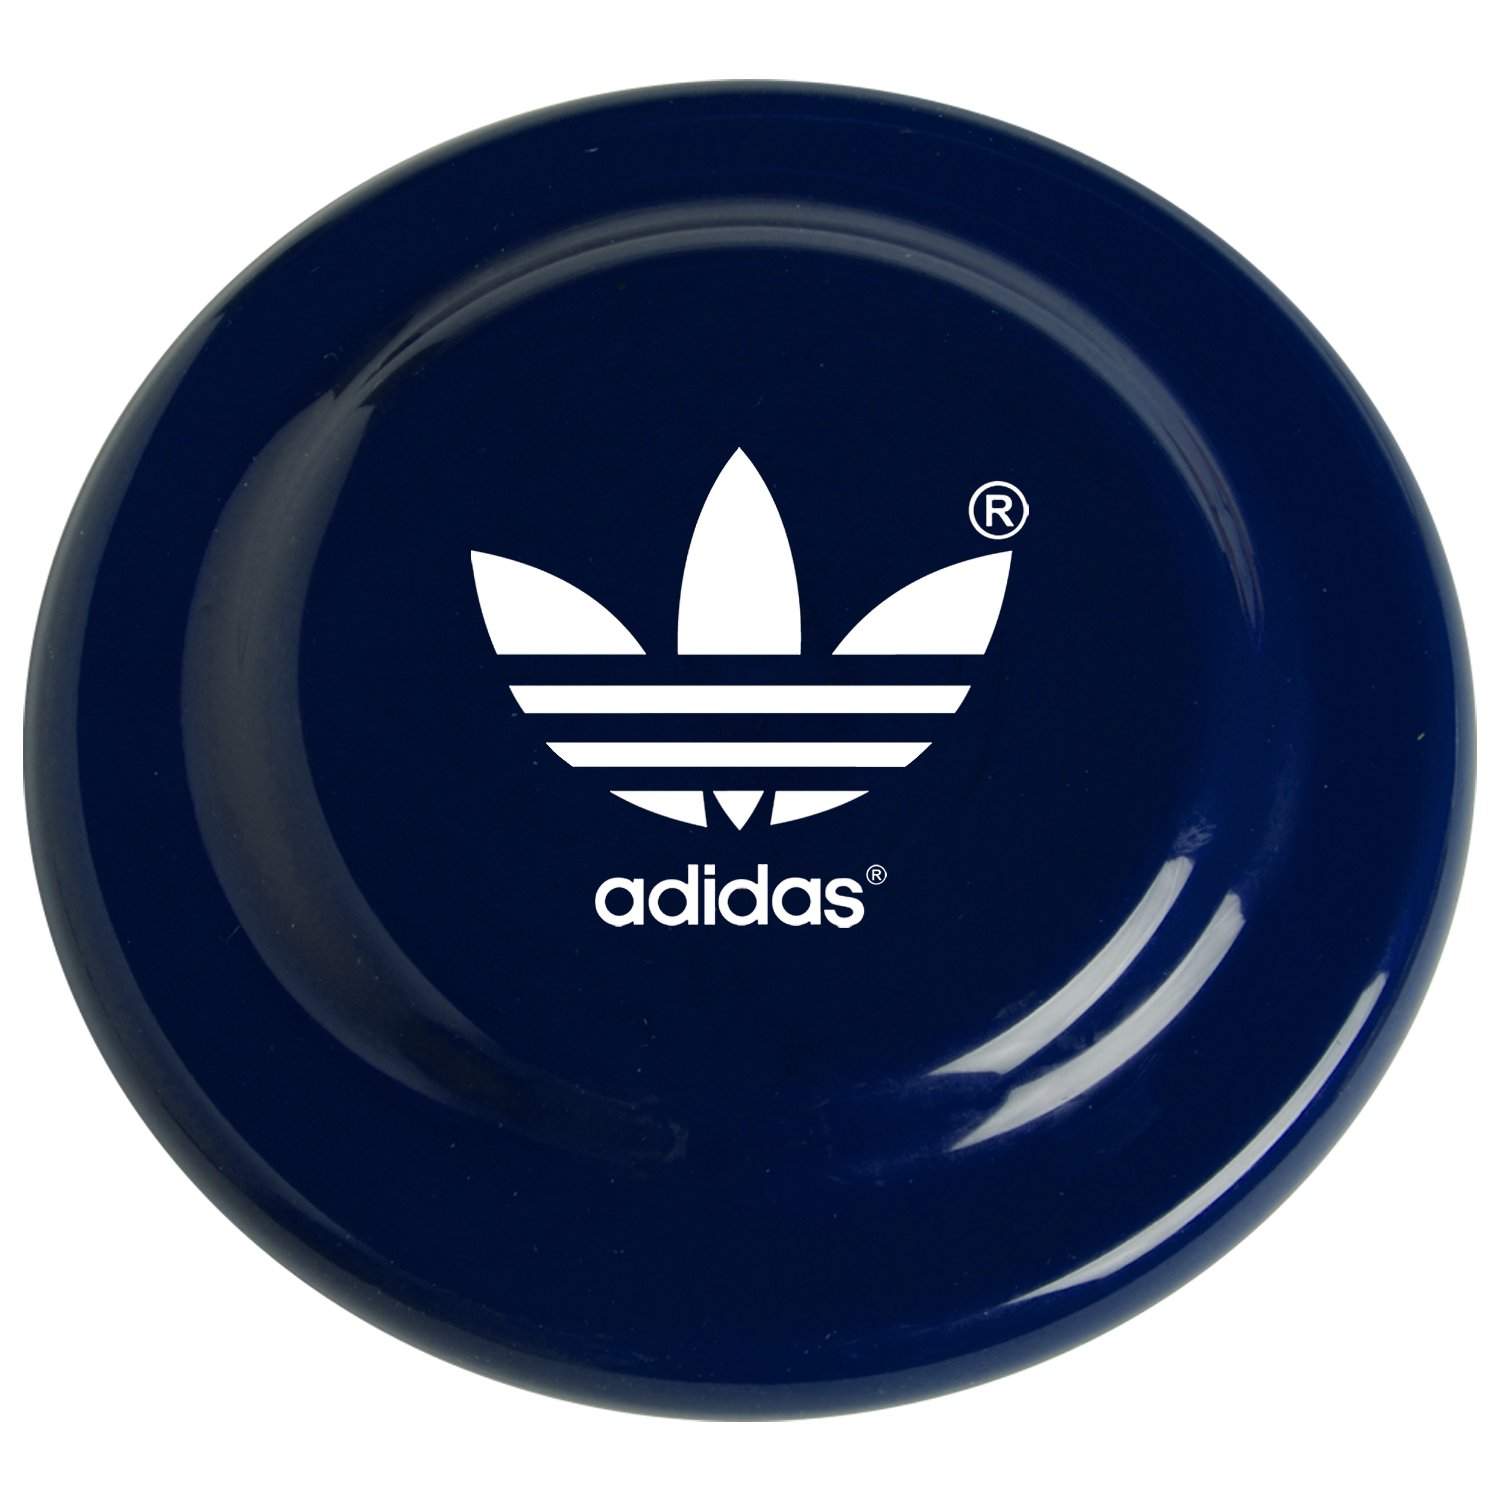 Frisbee Originals Adidas Nike Wallpaper Smith Desktop PNG Image